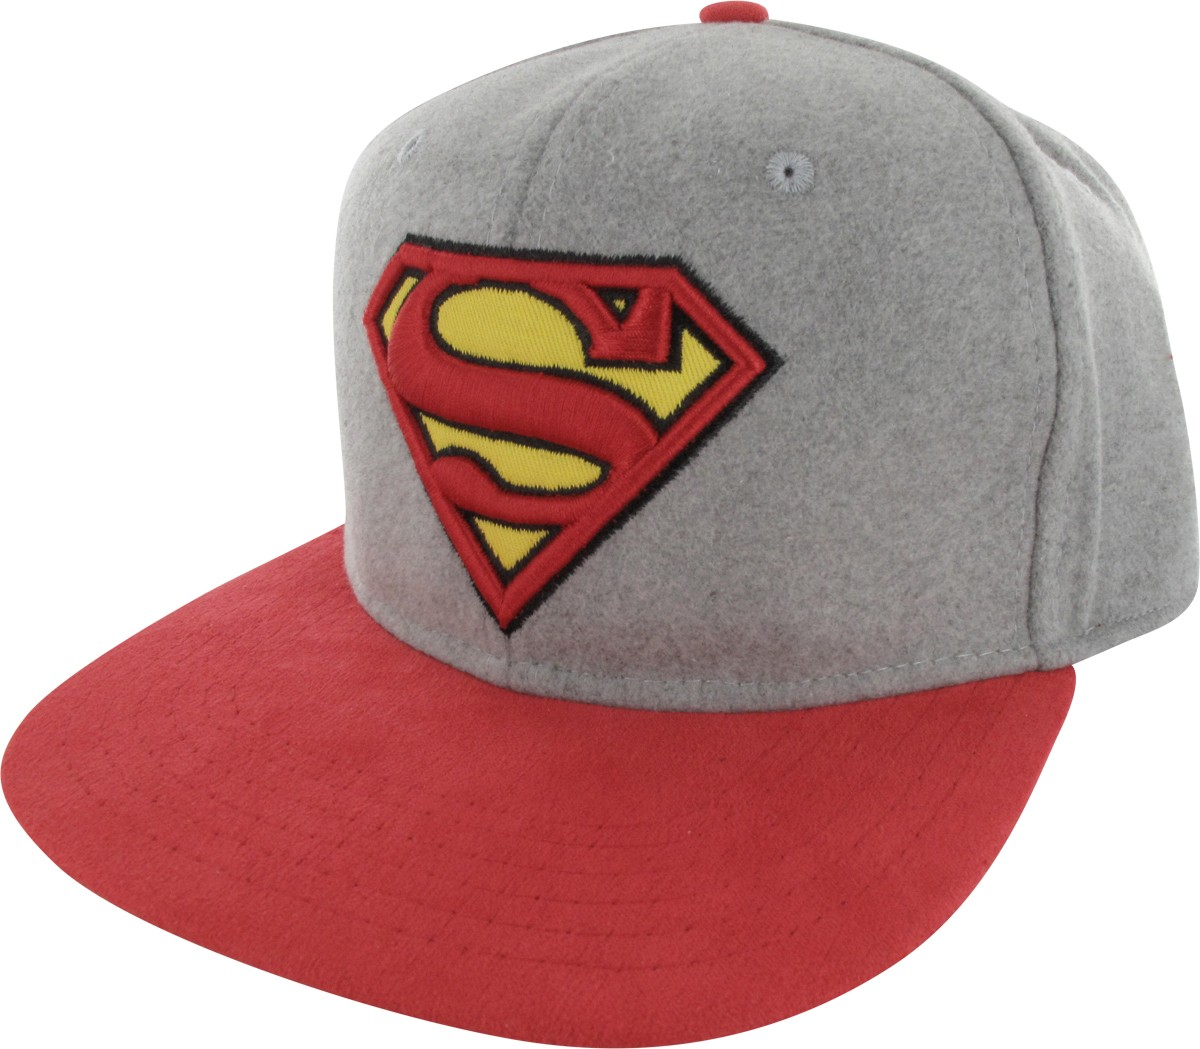 Buckle Hats: Superman Logo Felted Crown Buckle Hat